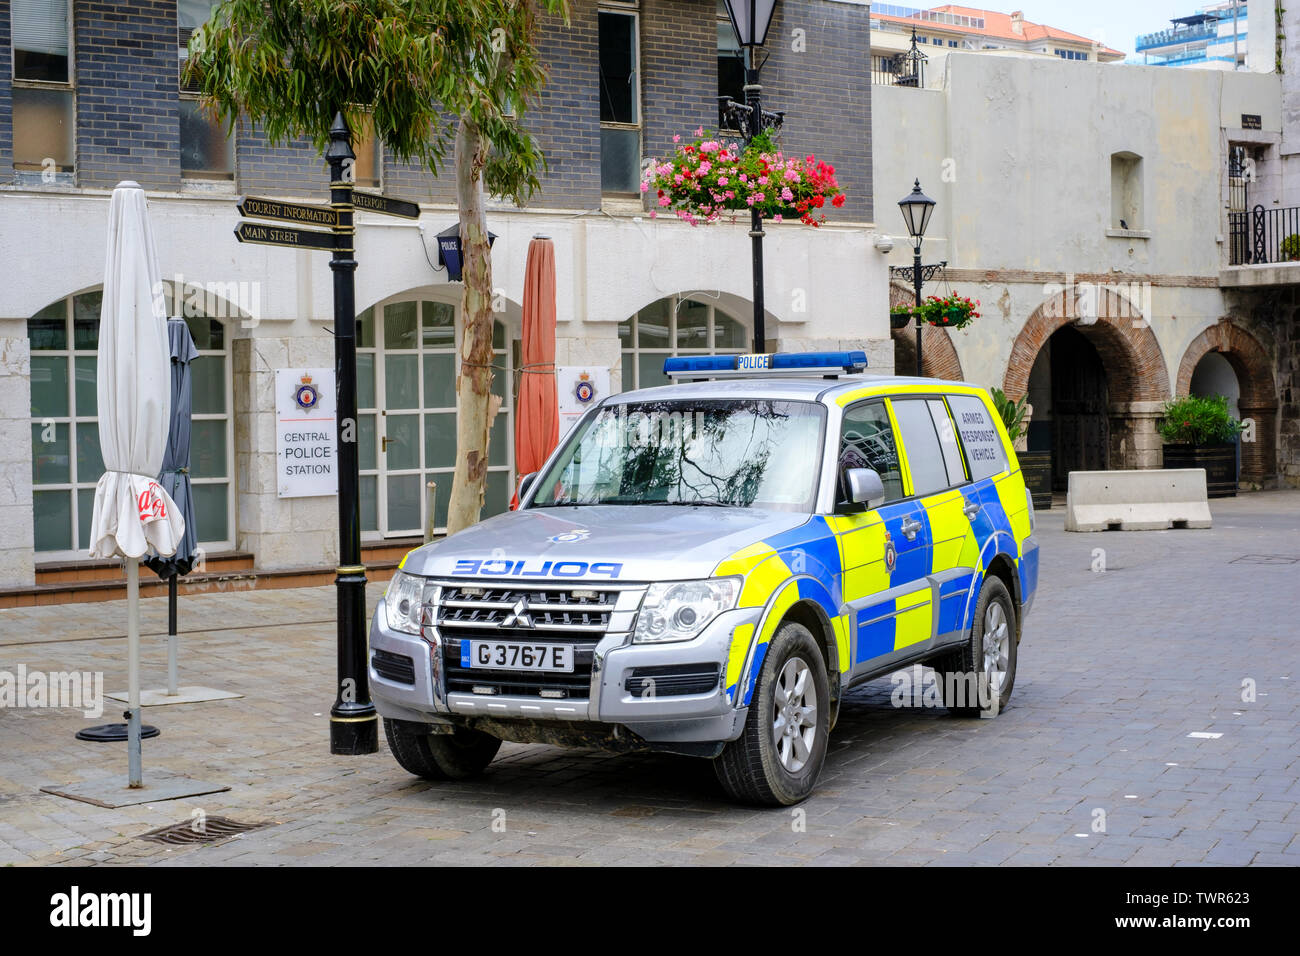 Royal Gibraltar Police, Central Police Station, Casemates Square in the centre of town with an armed police response vehicle parked outside - Stock Image